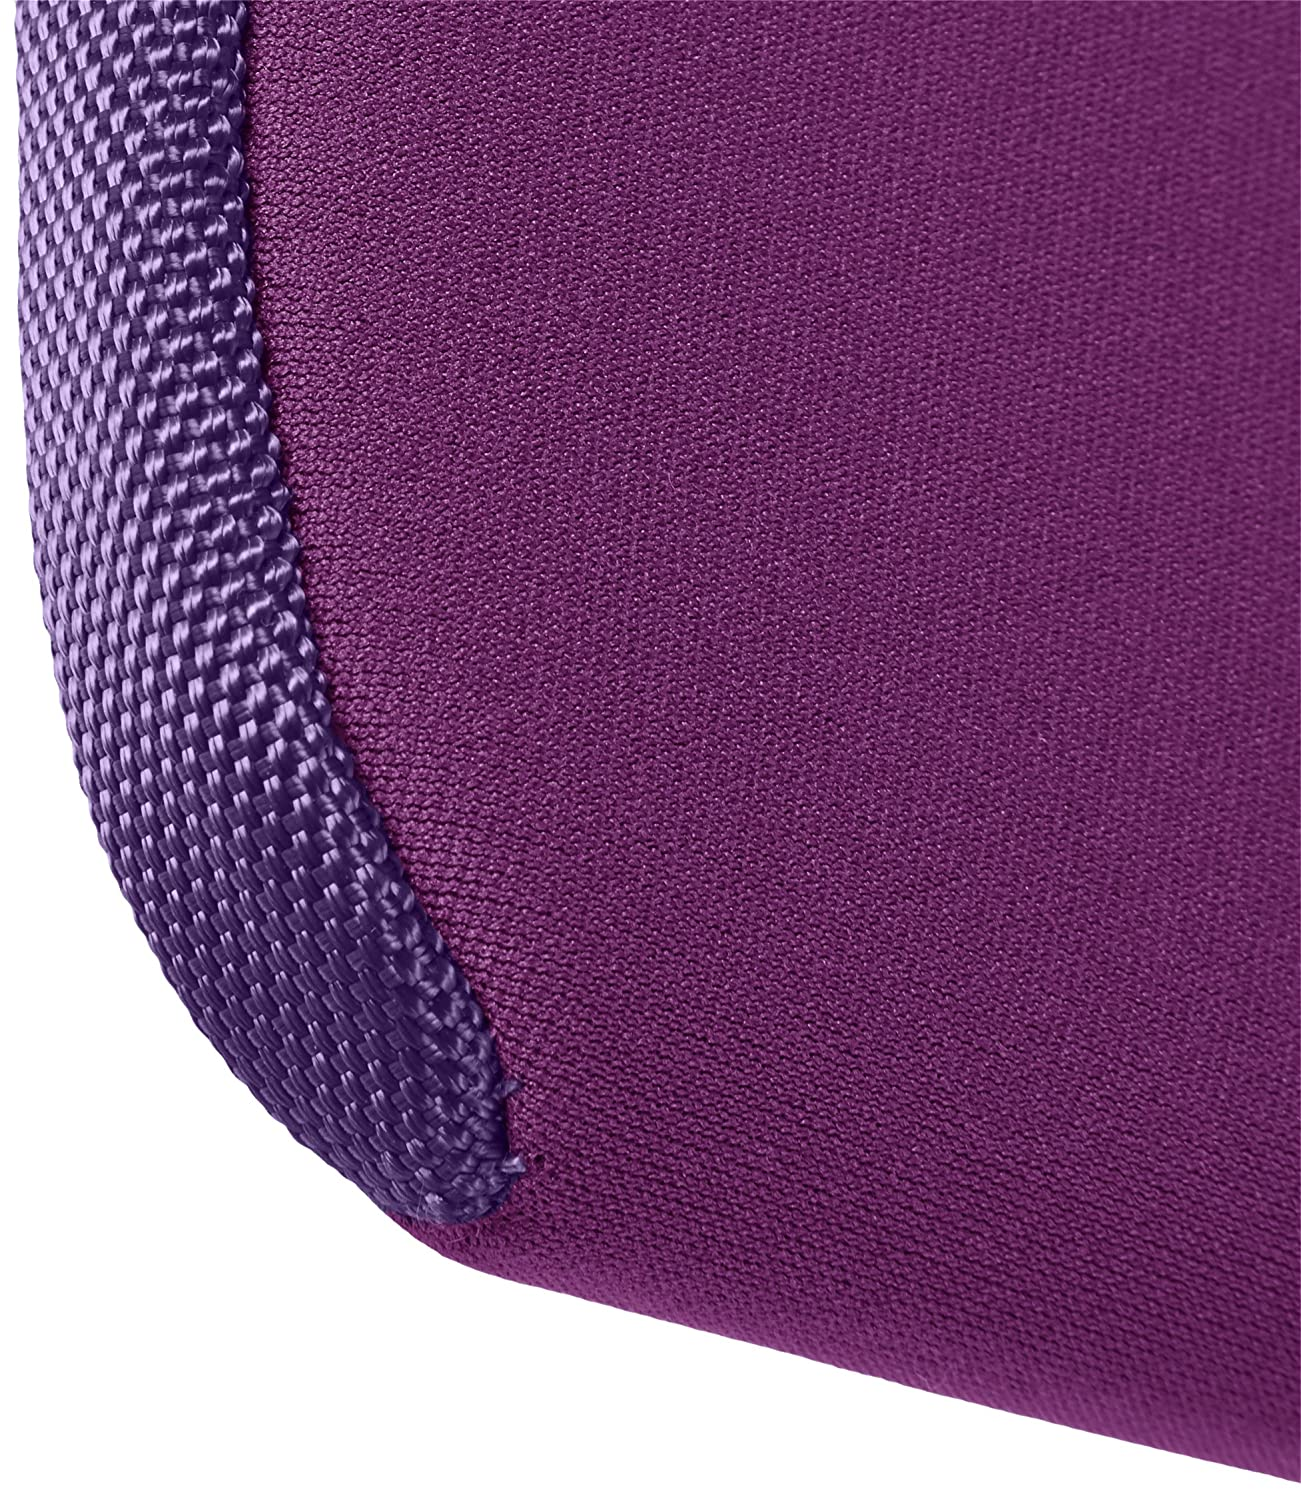 AmazonBasics 11.6-Inch Laptop Sleeve - Purple NC1506163G